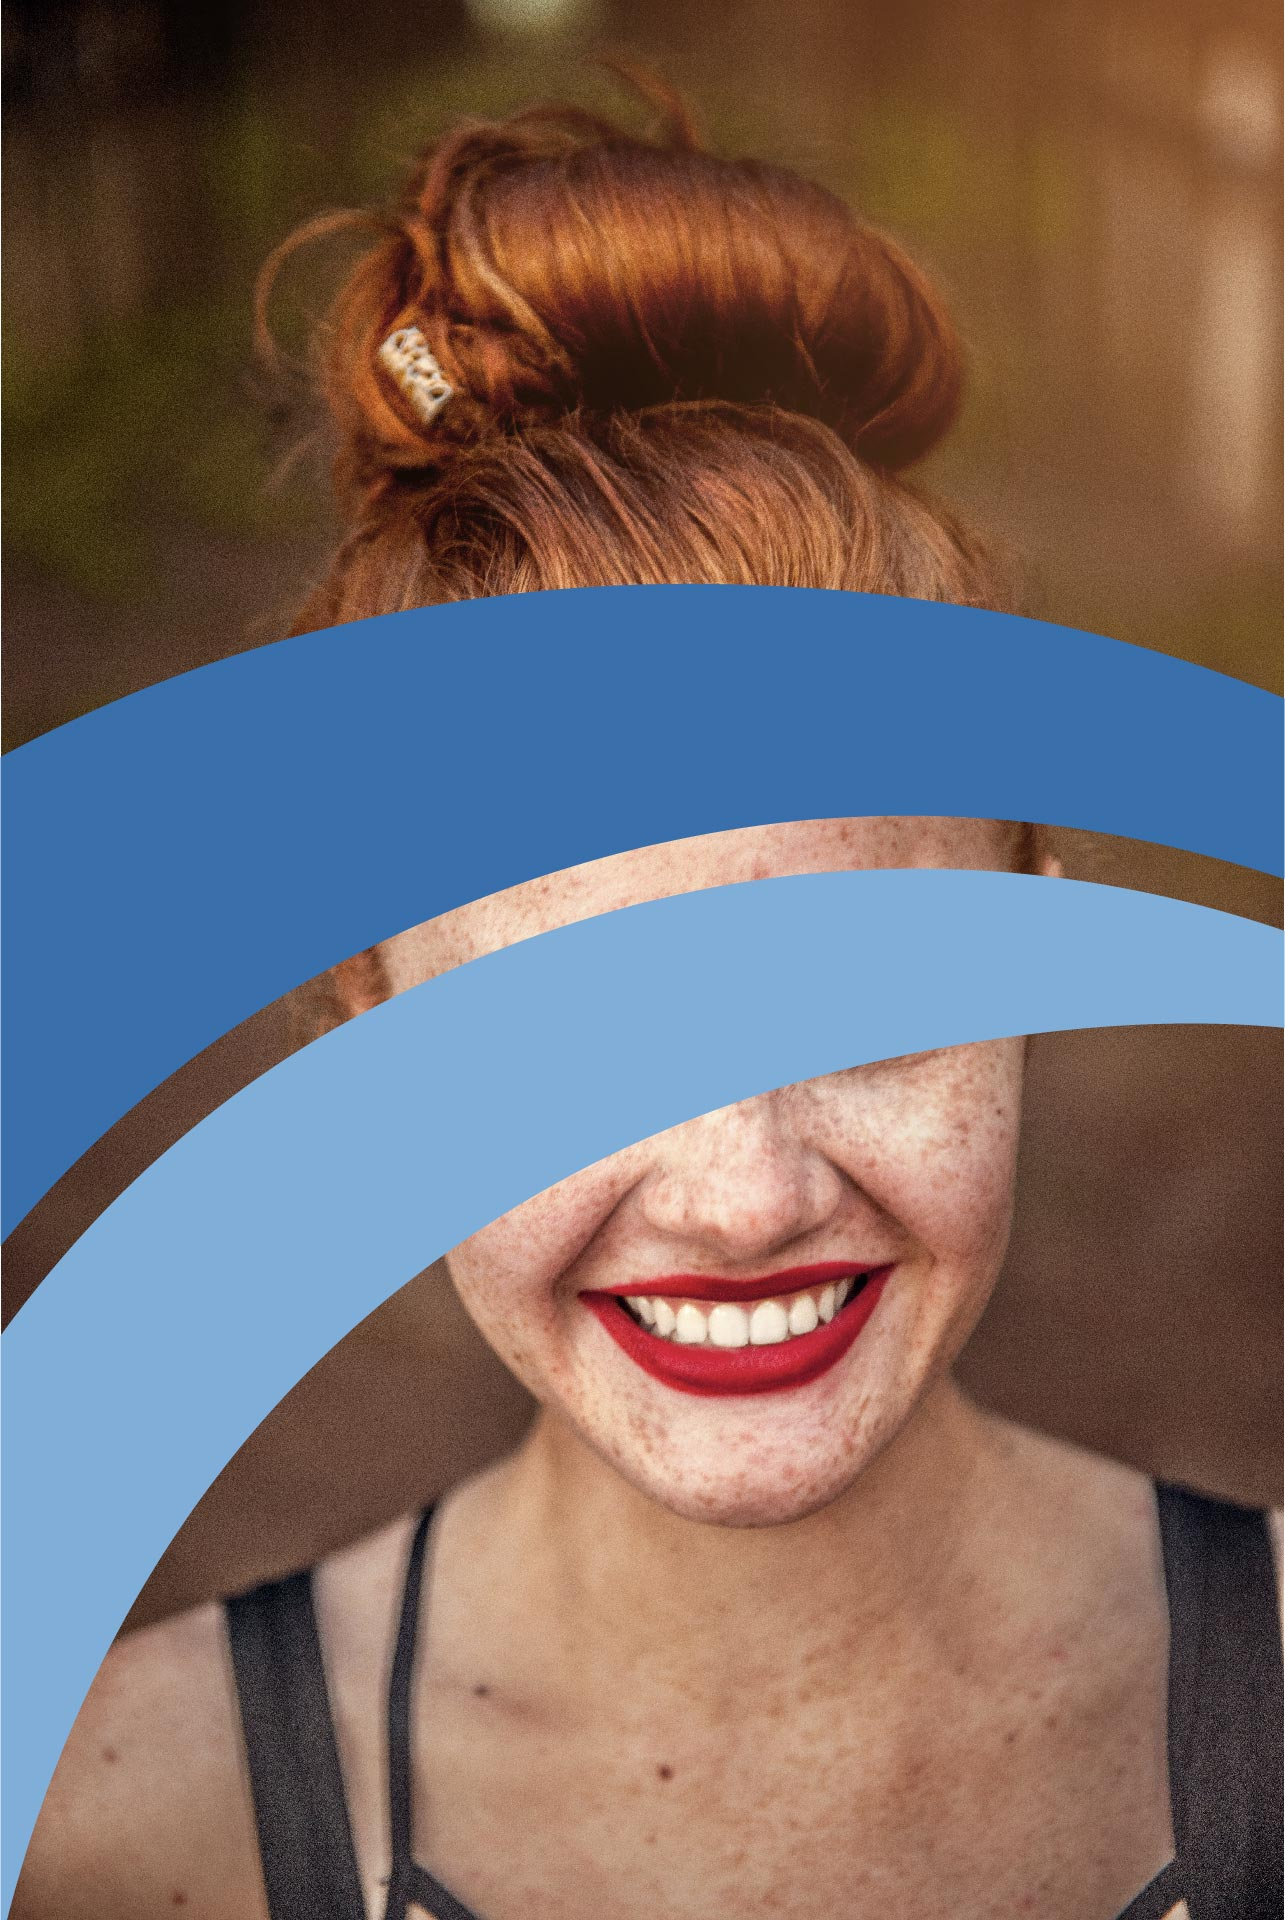 An anonymous photo of a girl with The Counseling Center logo across her face